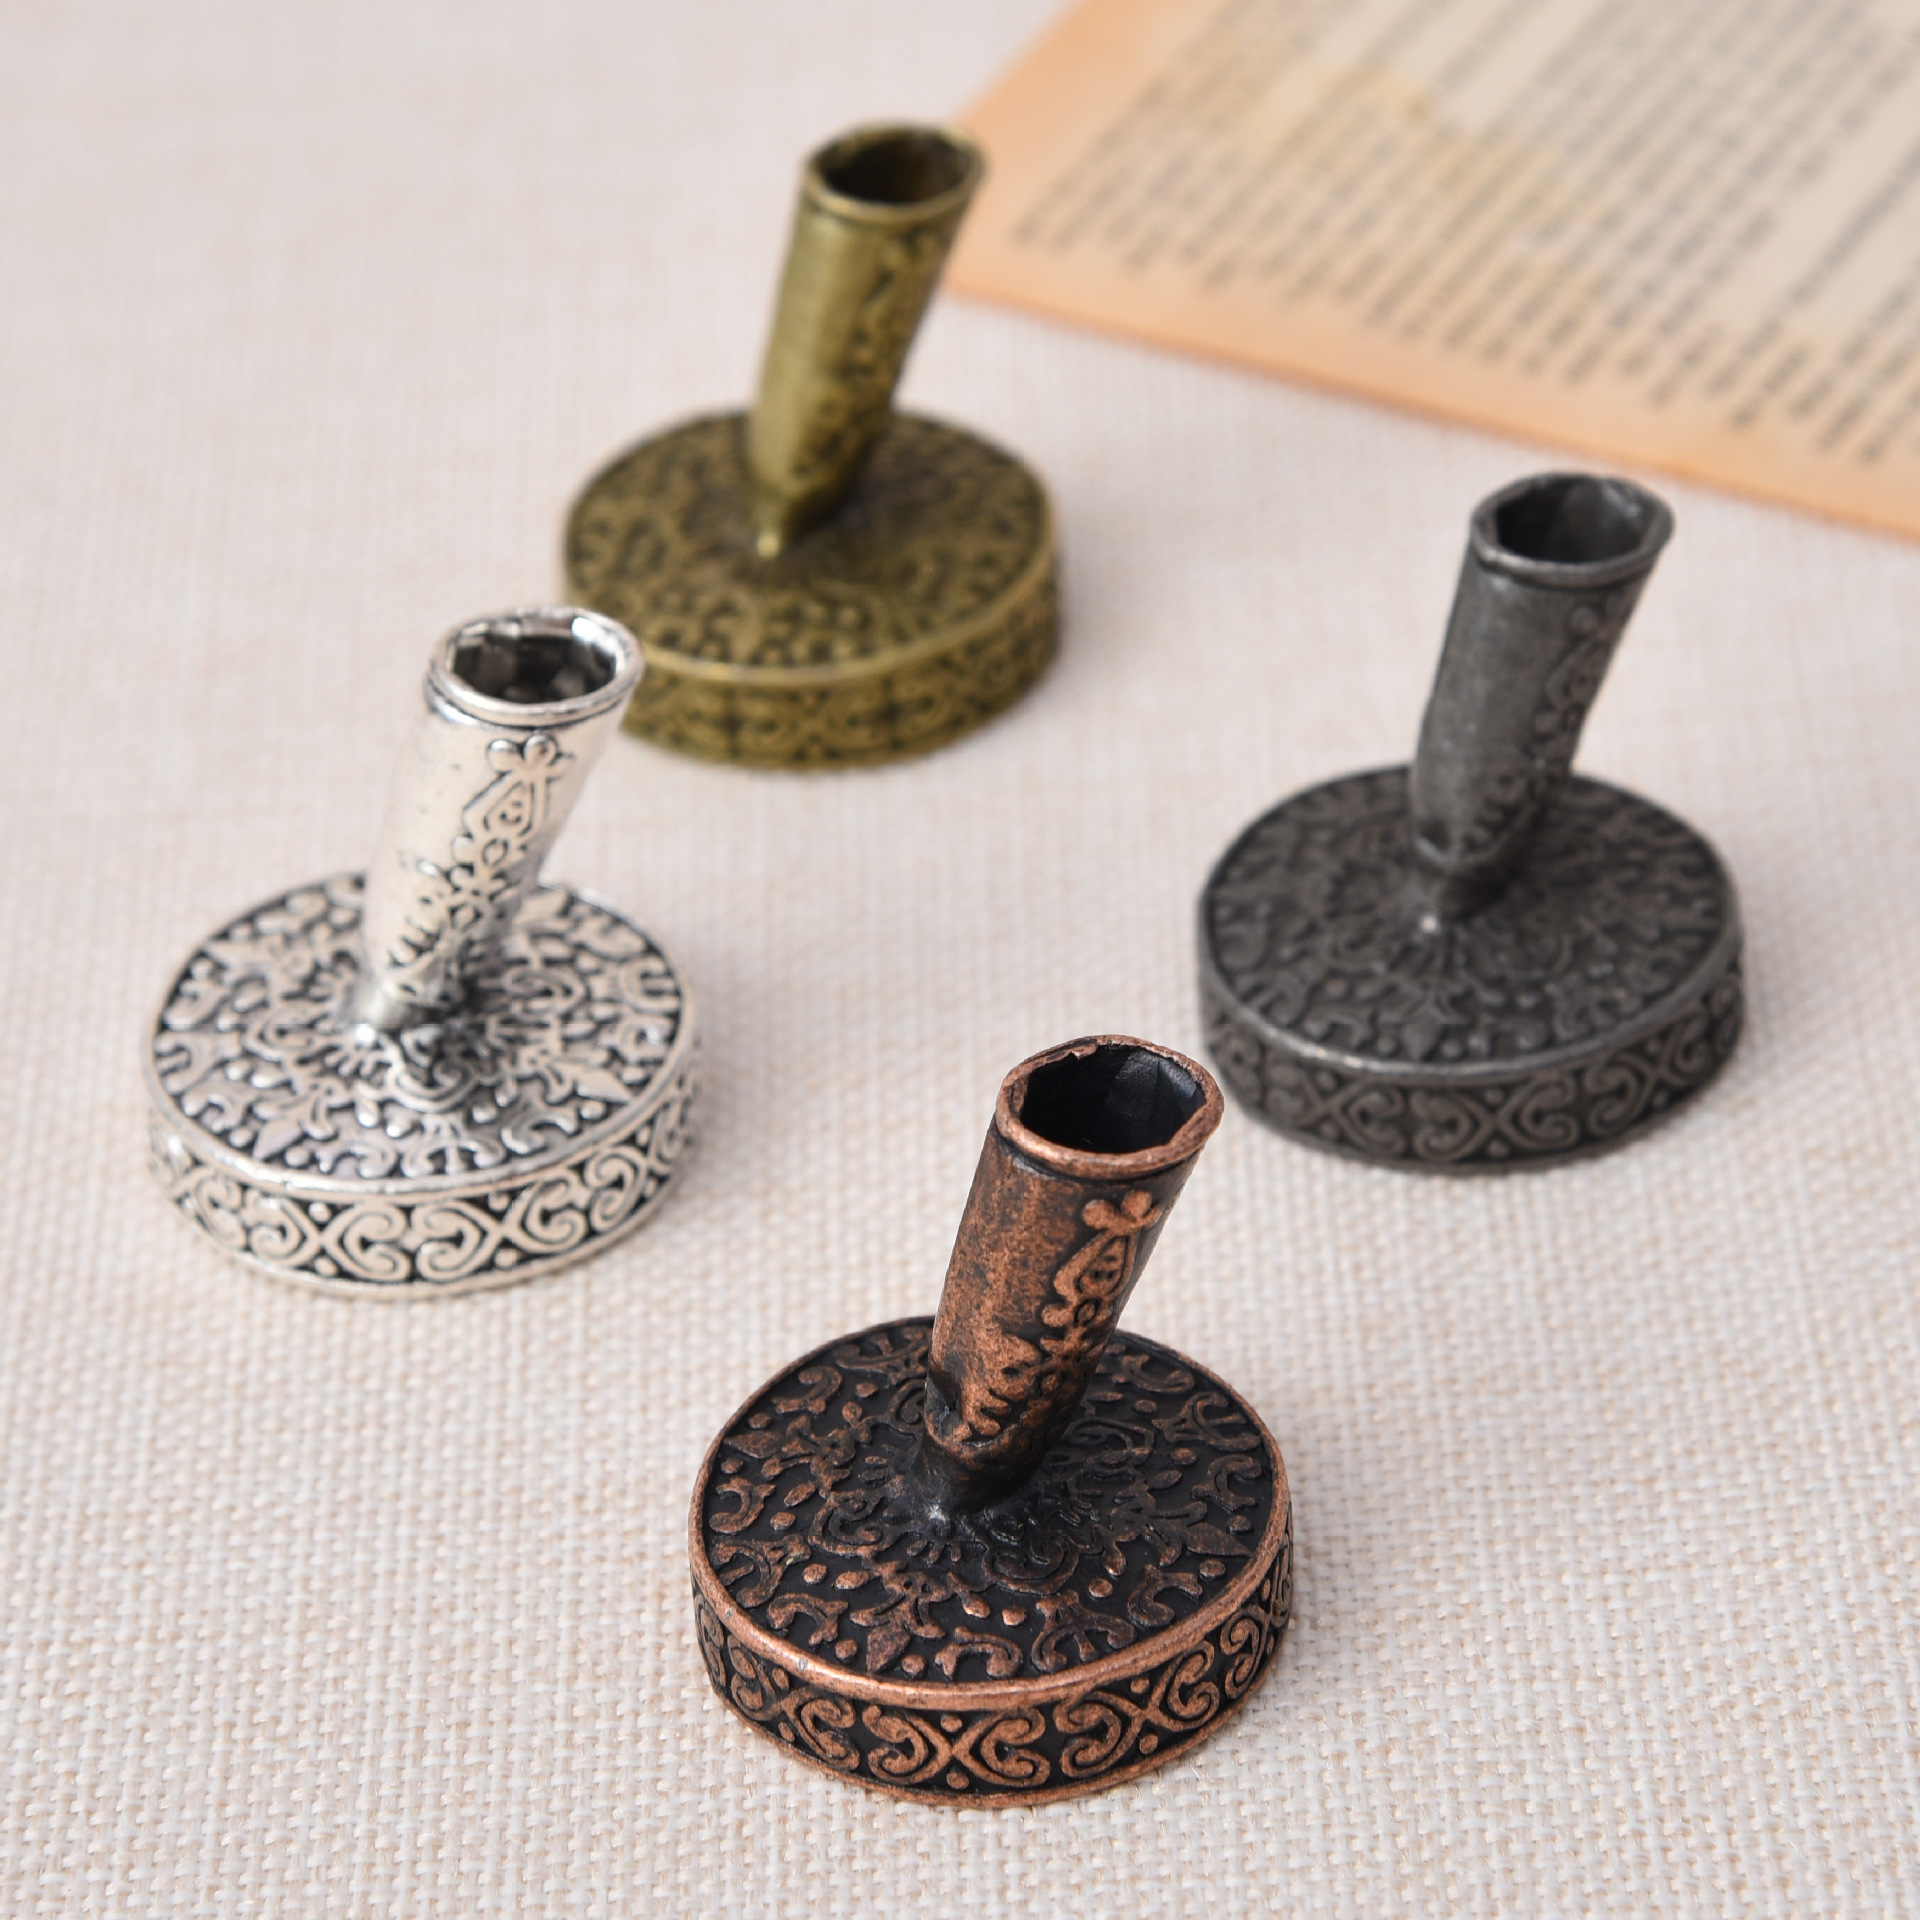 1Pcs Vintage European Feather Pen Stand Antique Metal Round Pen Holder Office School Pen Accessories Stationery Gift